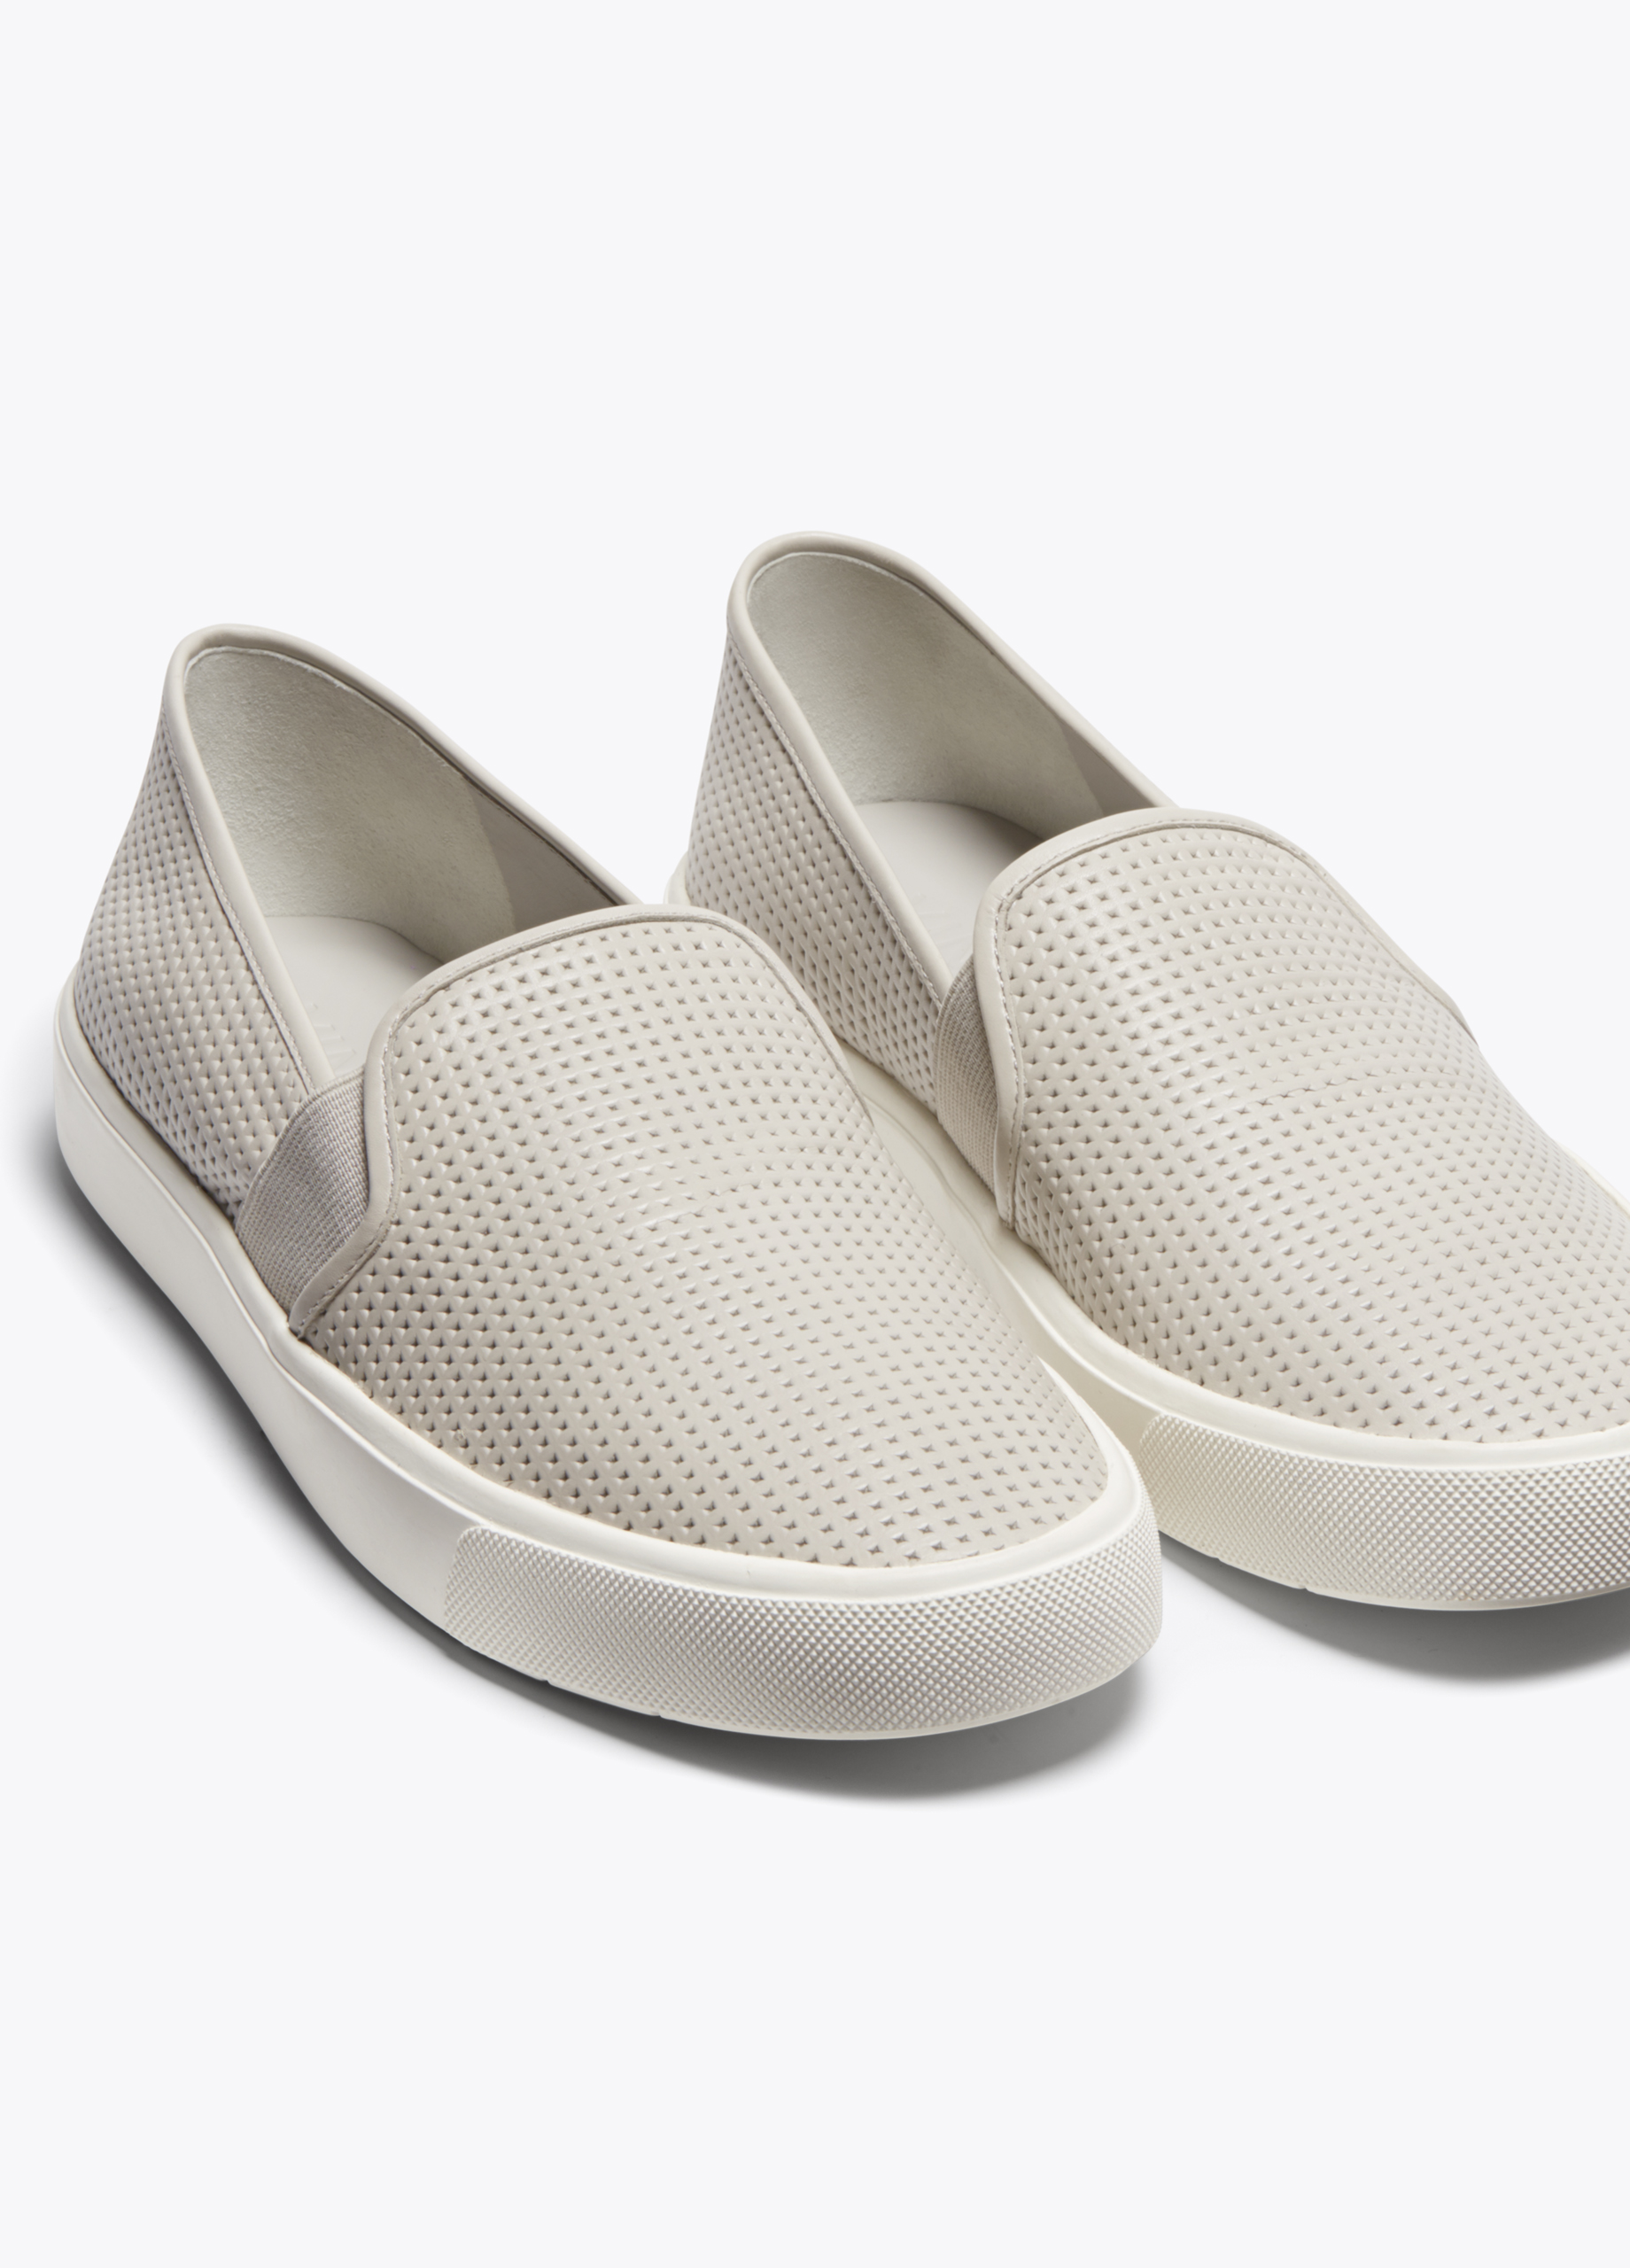 Vince Leather Slip On Sneakers clearance affordable 1NgXZaGK